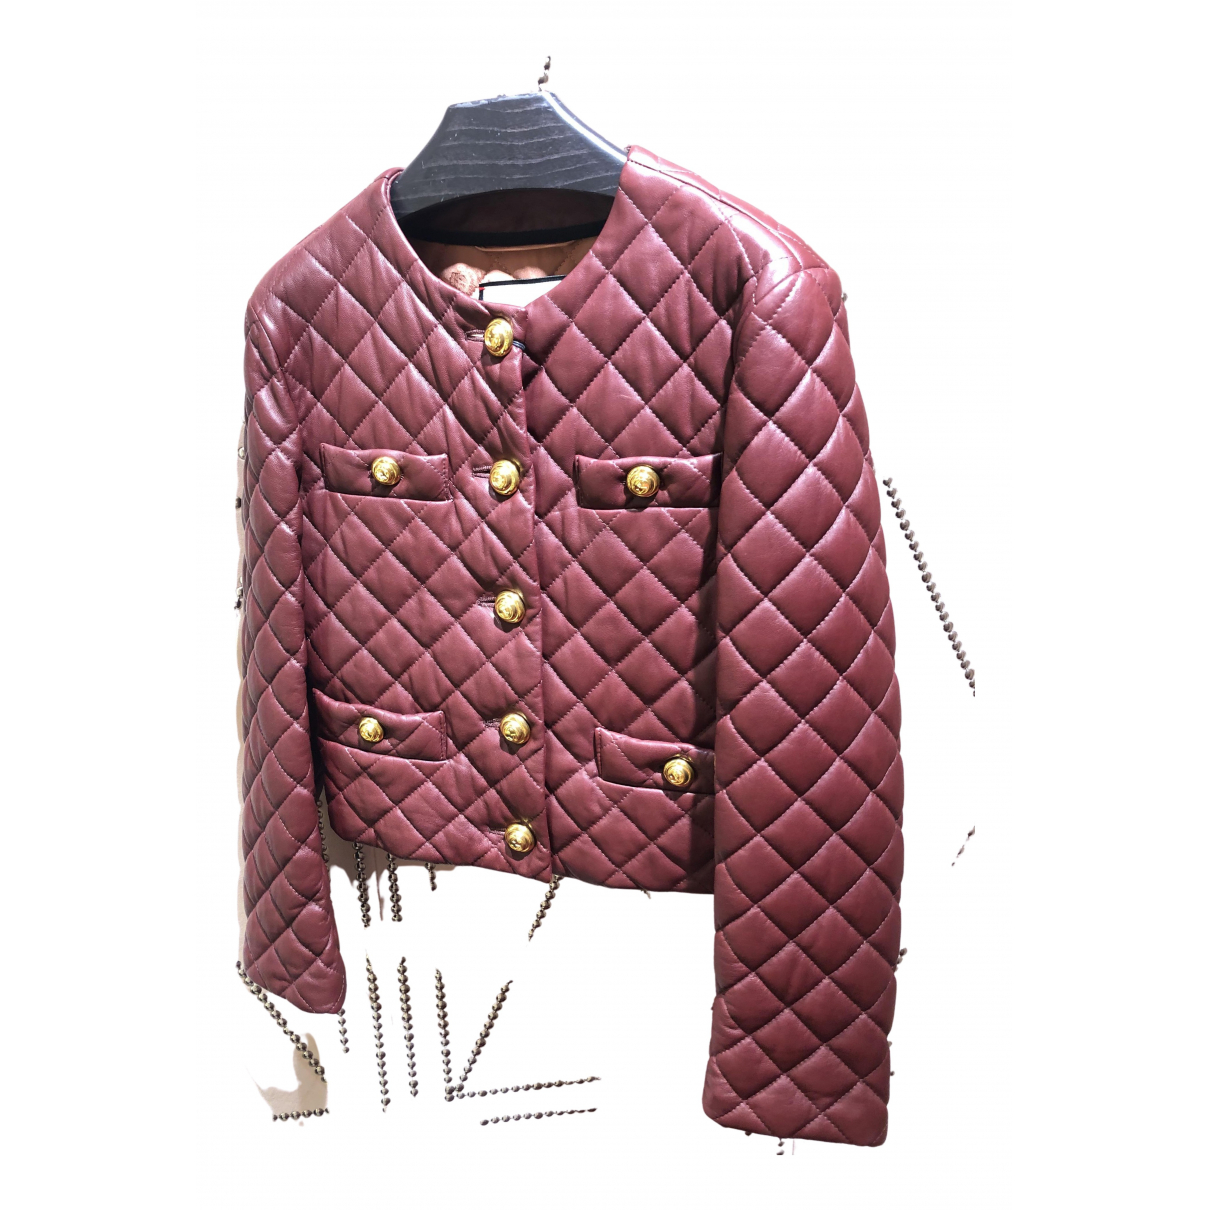 Gucci N Burgundy Leather jacket for Women 38 IT